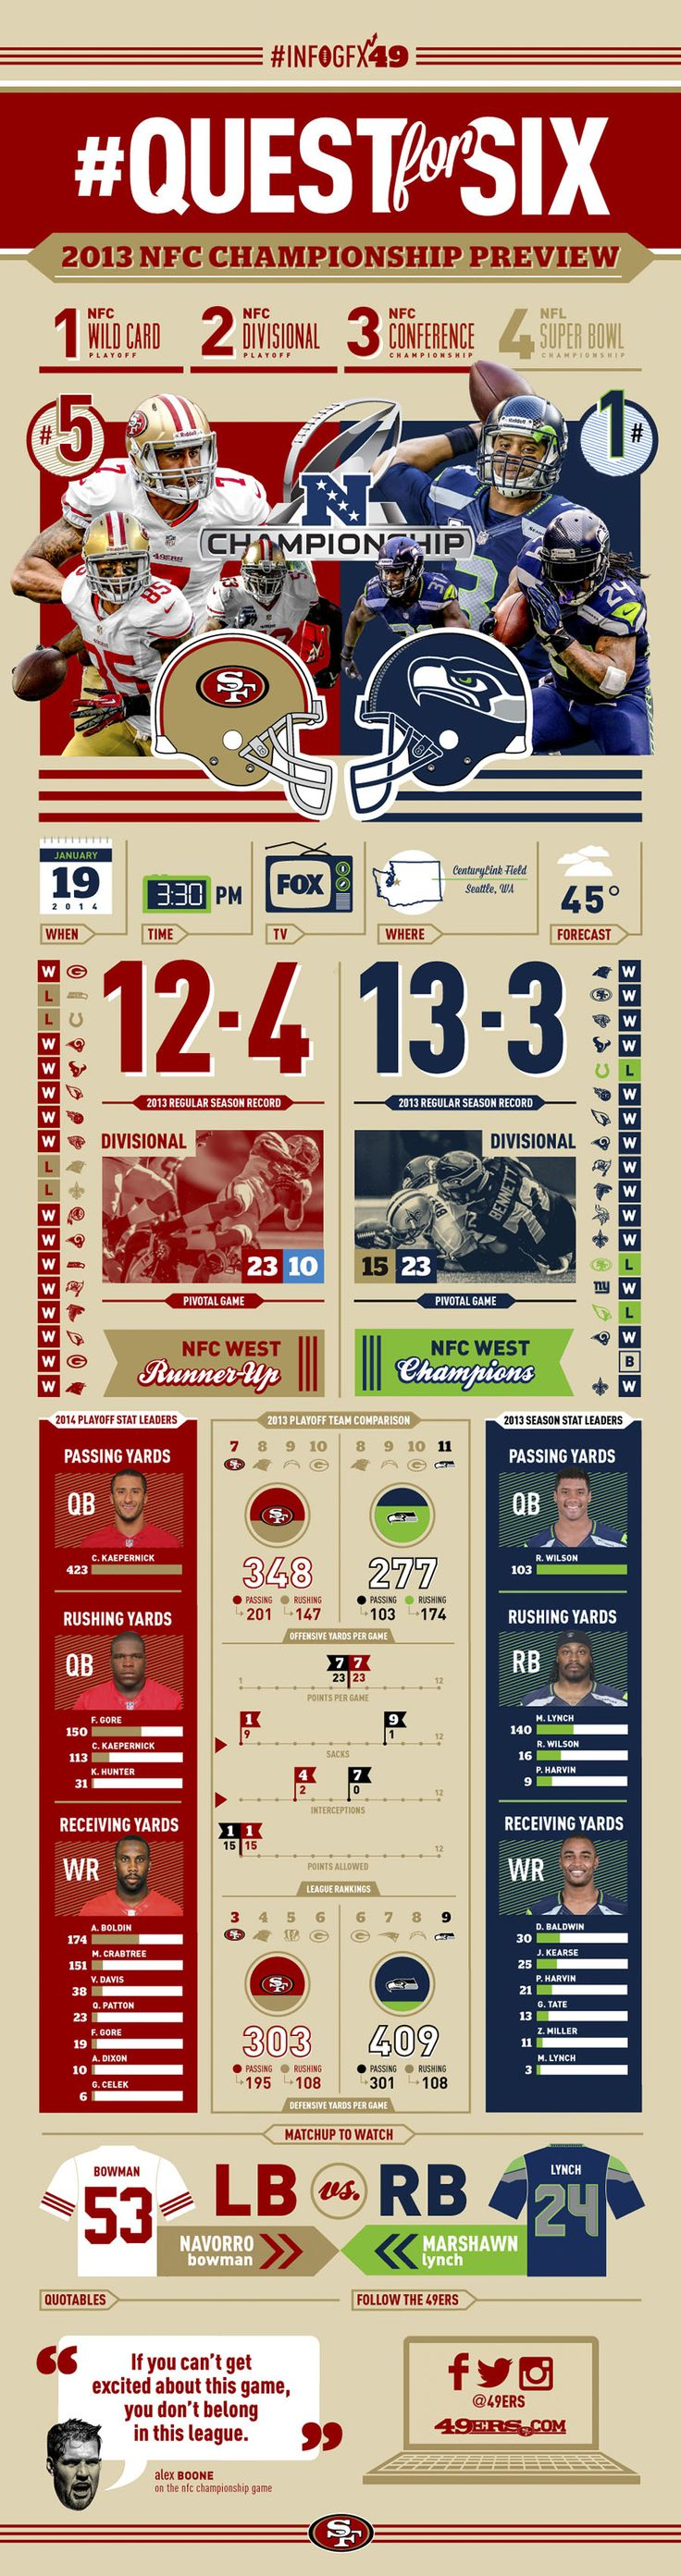 #Infographic preview of the 2014 NFC Championship game pitting the San Francisco 49ers vs. the Seattle Seahawks. #Infogfx49 #QuestforSix #NFLPlayoffs #49ers